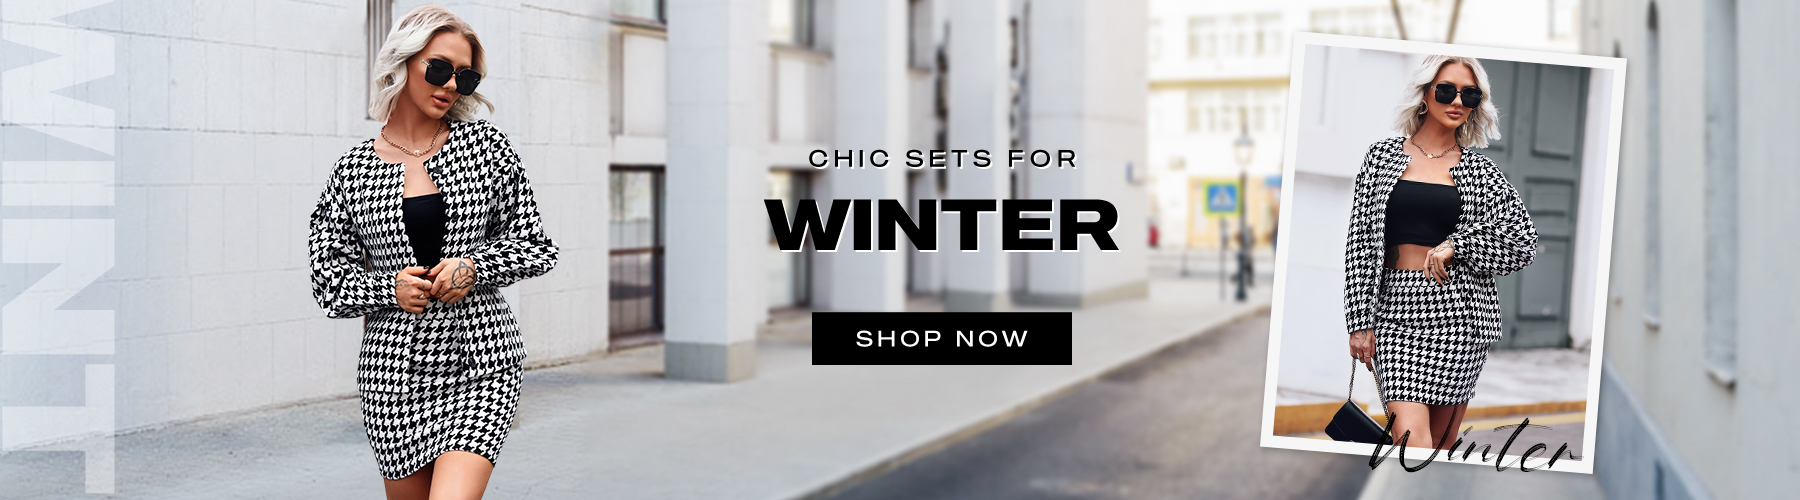 Chic Sets for Winter